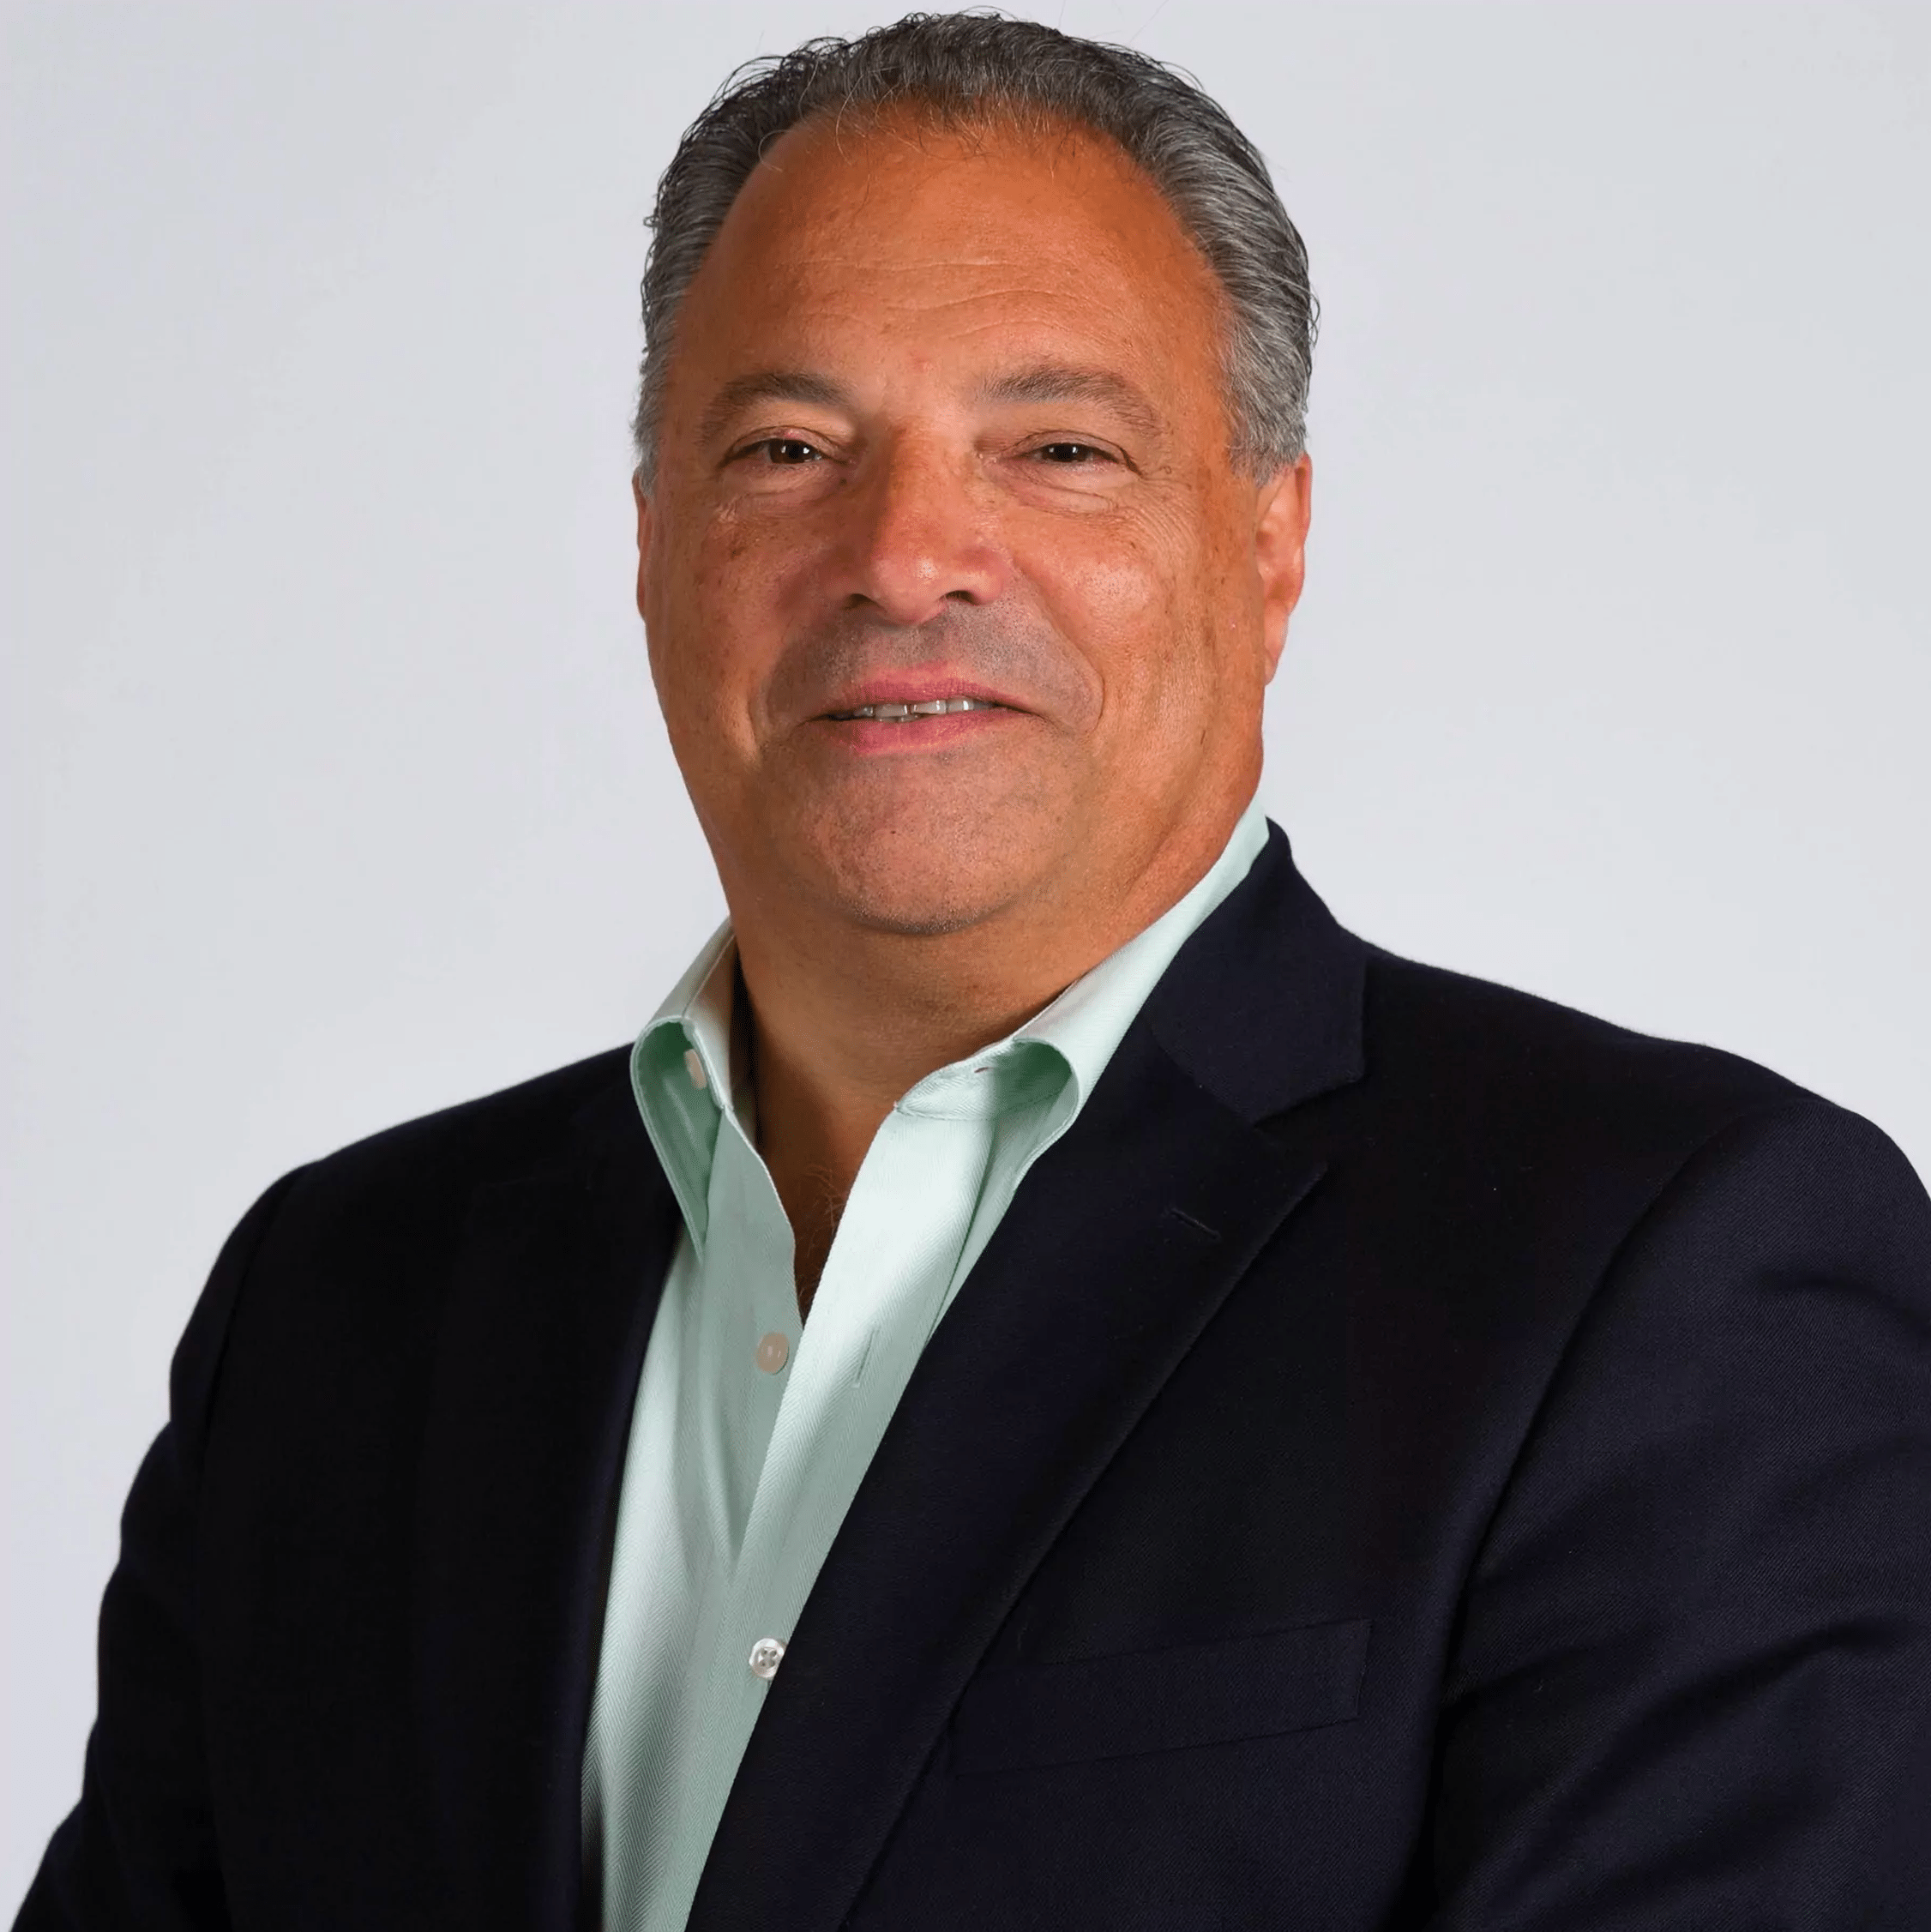 Peter Verlezza | Managing Partner of SMB Networks, LLC